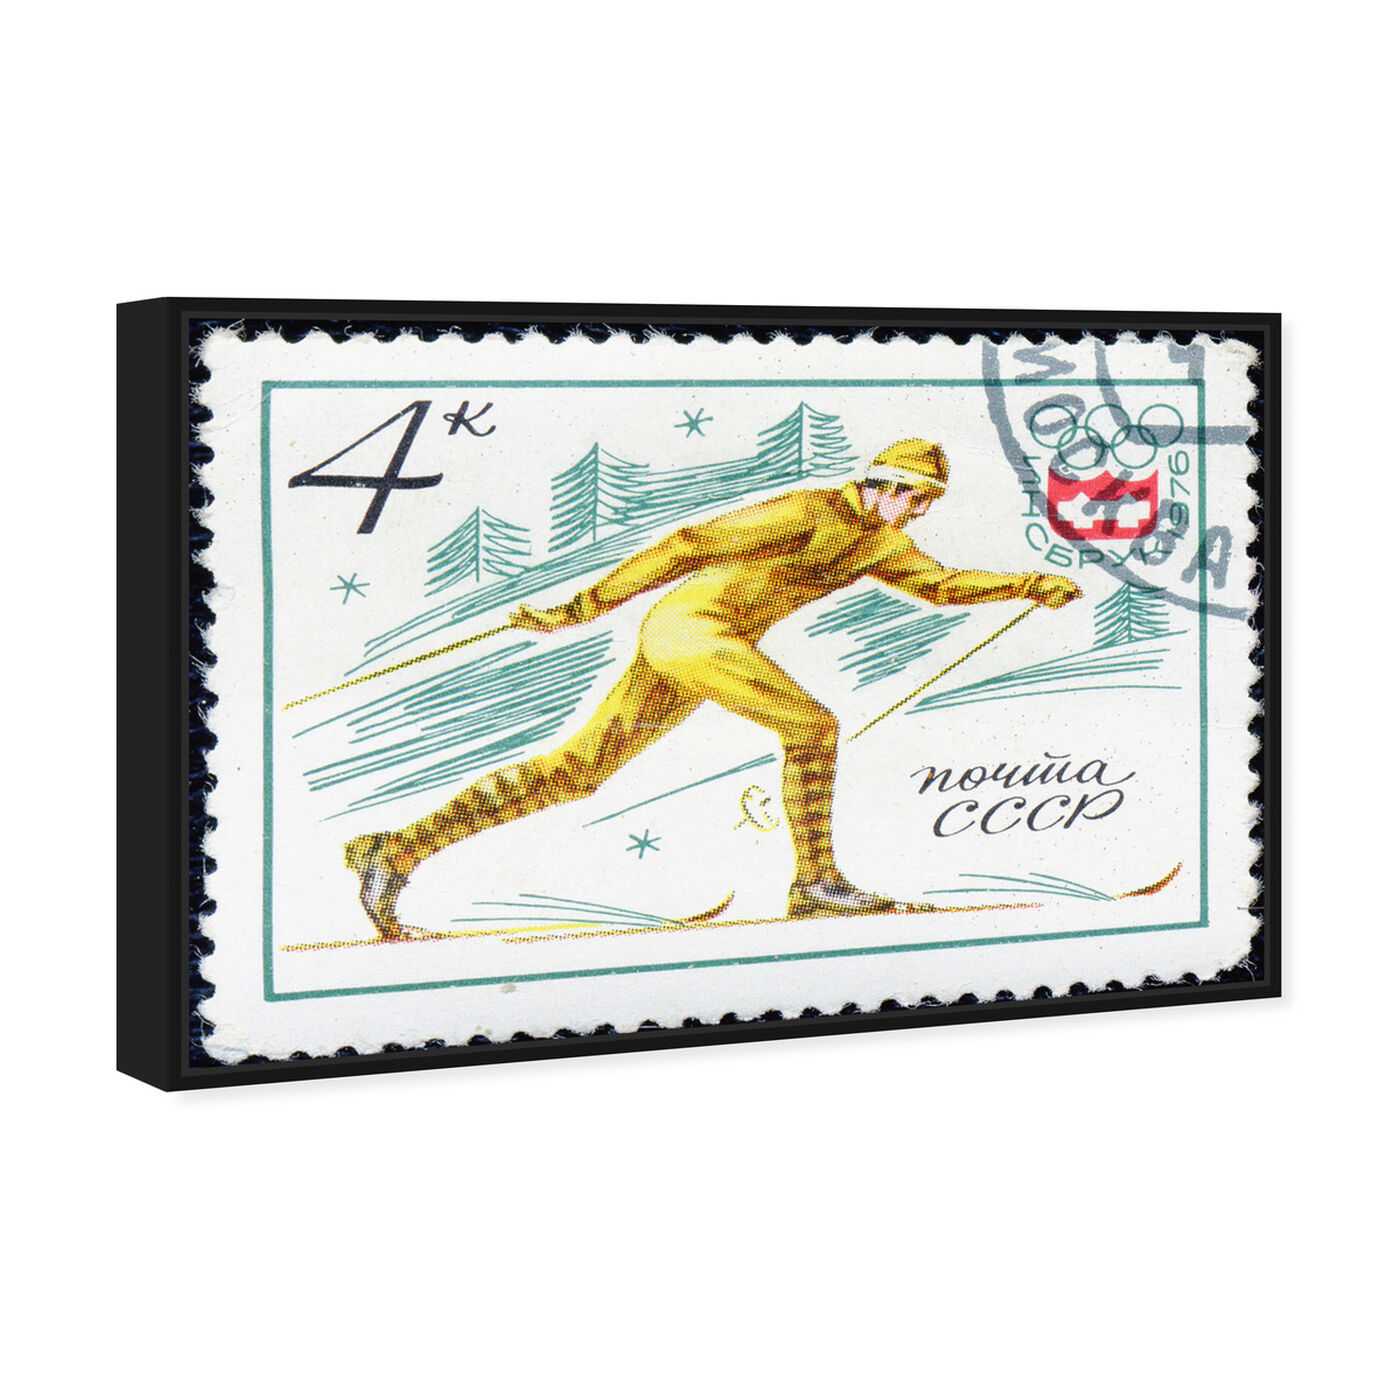 Angled view of 1976 XII featuring sports and teams and skiing art.